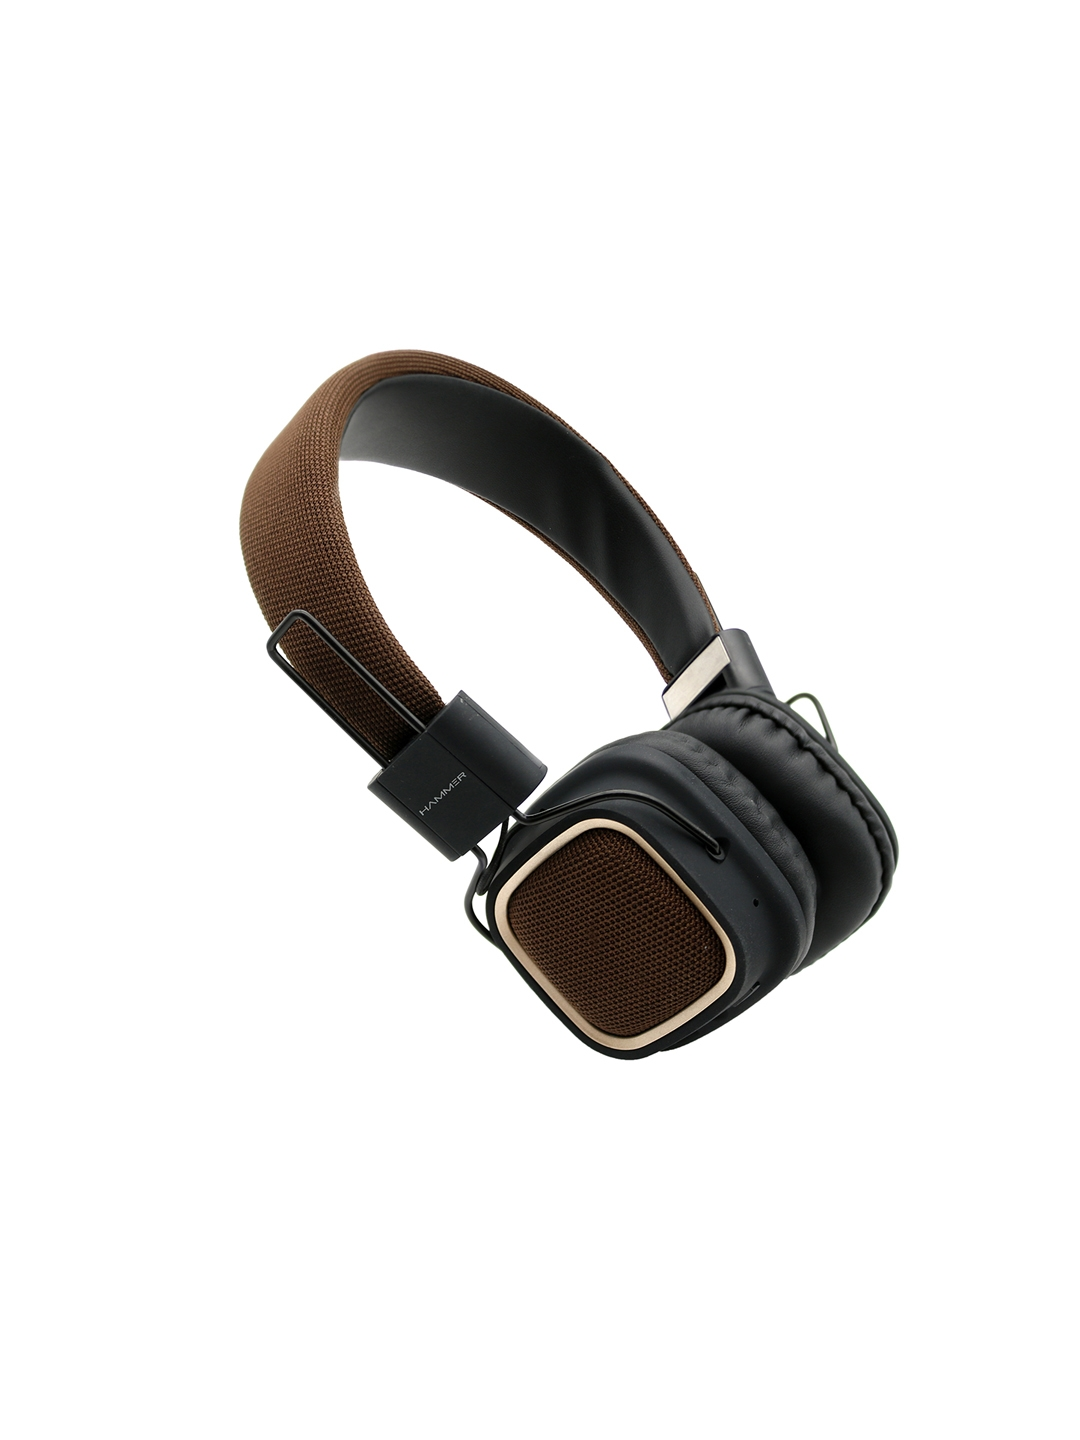 Hammer Plunder On The Ear Wireless Headphones